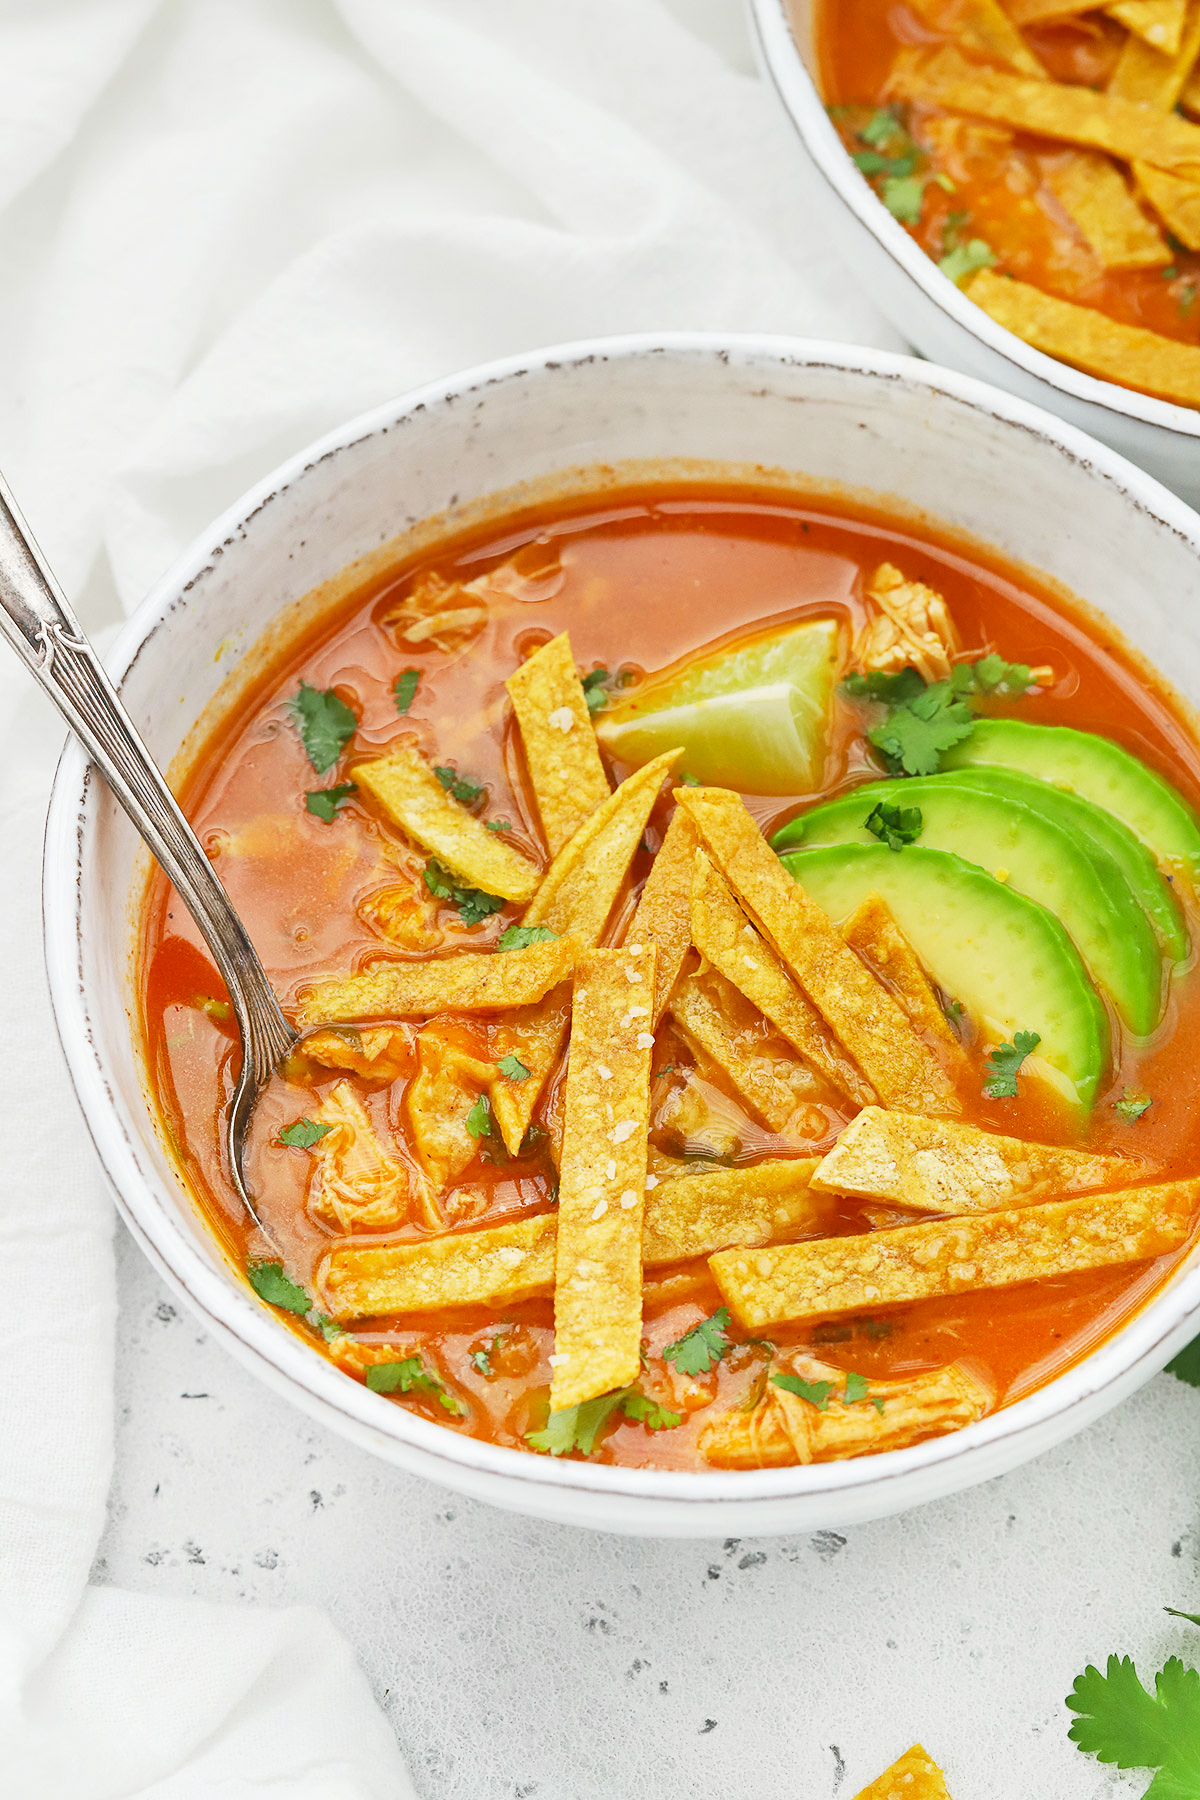 Front view of a white stoneware bowl of chicken tortilla soup topped with sliced avocado and crispy baked tortilla strips